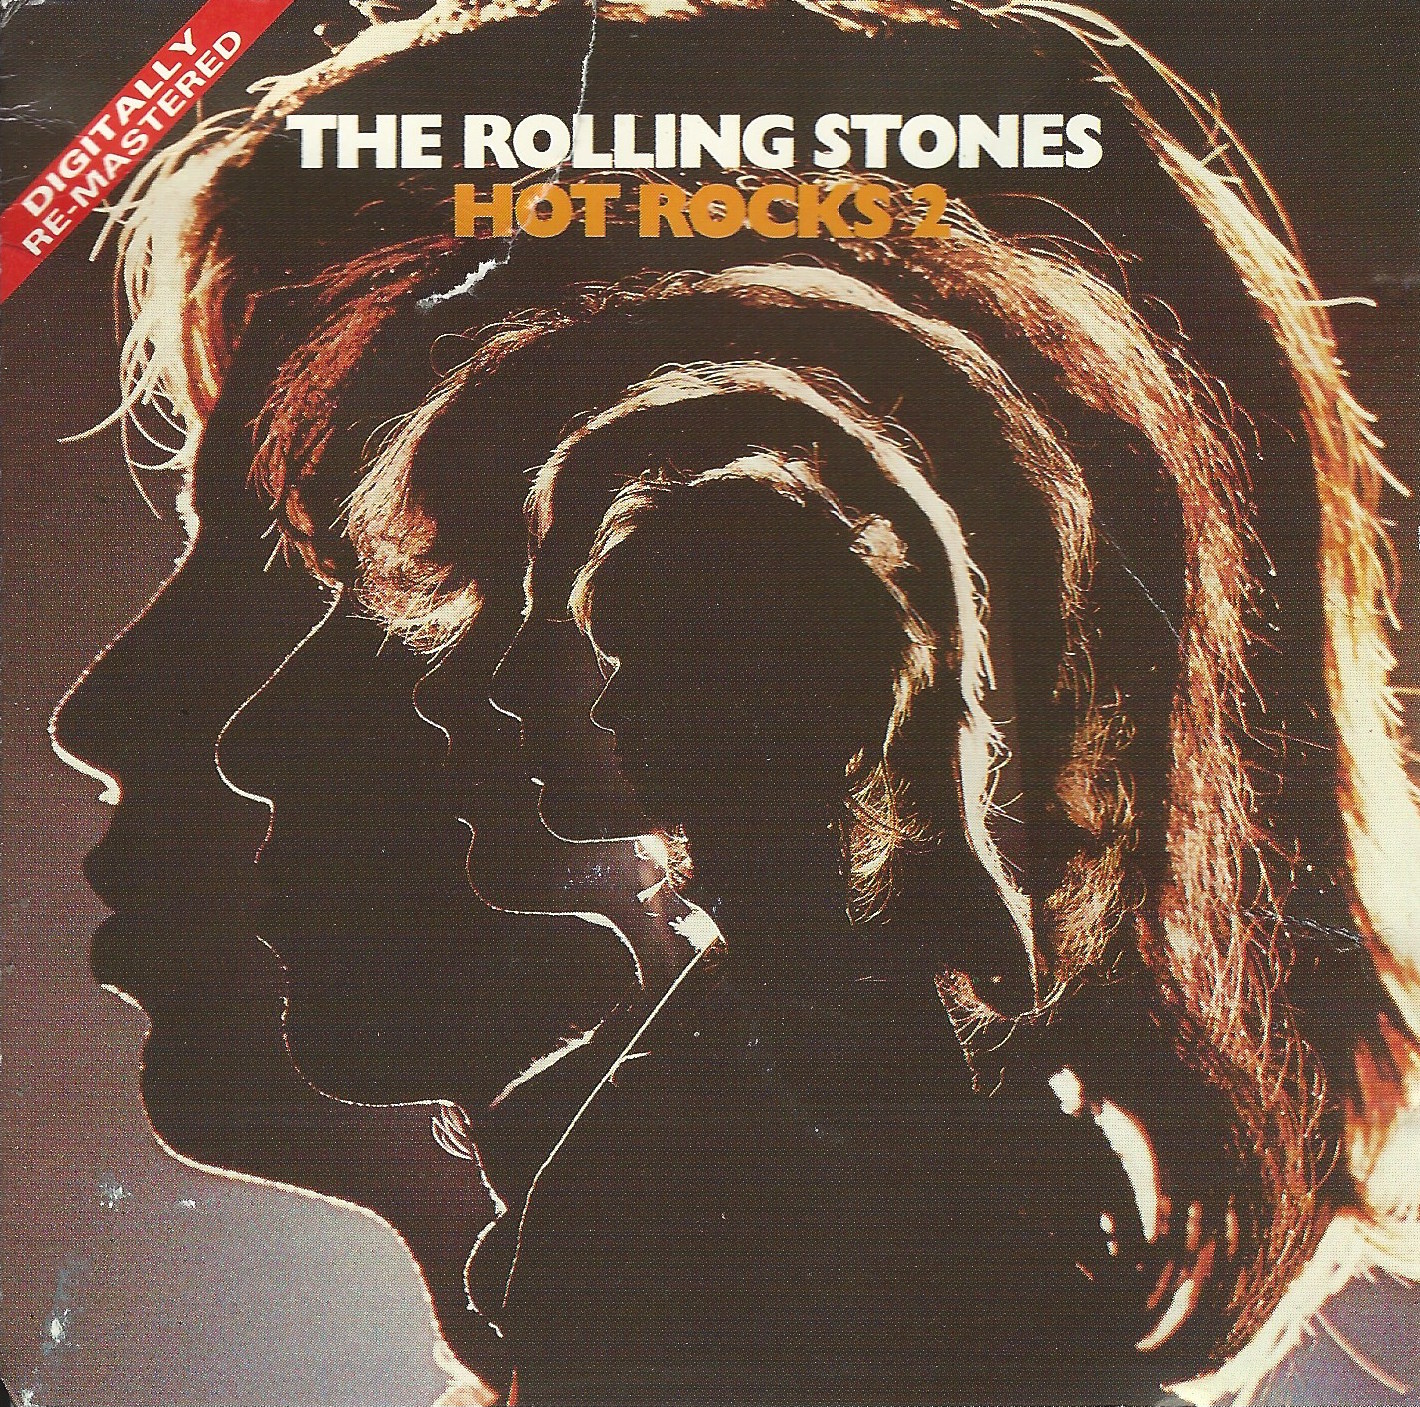 The Rolling Stones 'Hot Rocks 1964-1971' | Rolling stones ...  |Rolling Stones Hot Rocks Album Cover